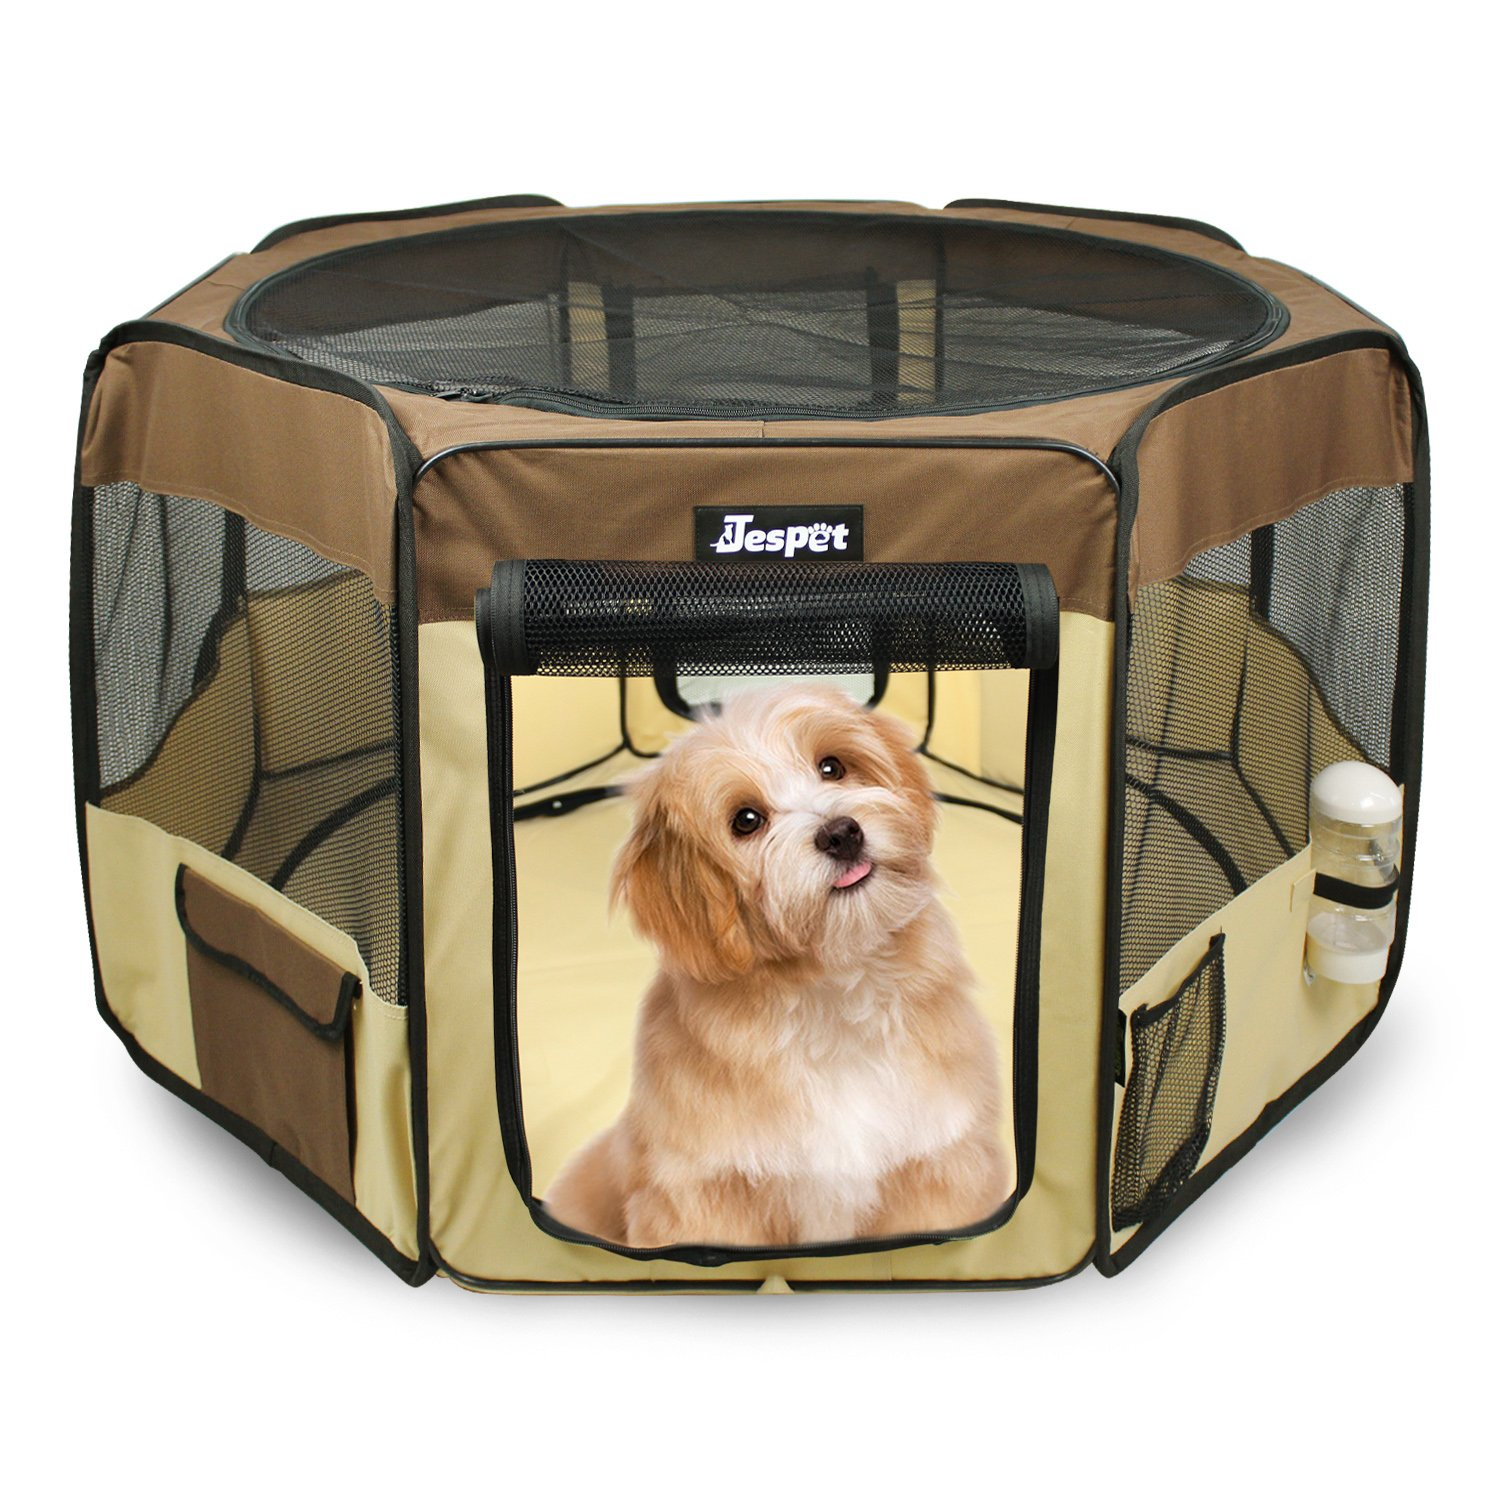 Jespet 61'' Pet Dog Playpens, Portable Soft Dog Exercise Pen Kennel with Carry Bag for Puppy Cats Kittens Rabbits,Brown by Jespet